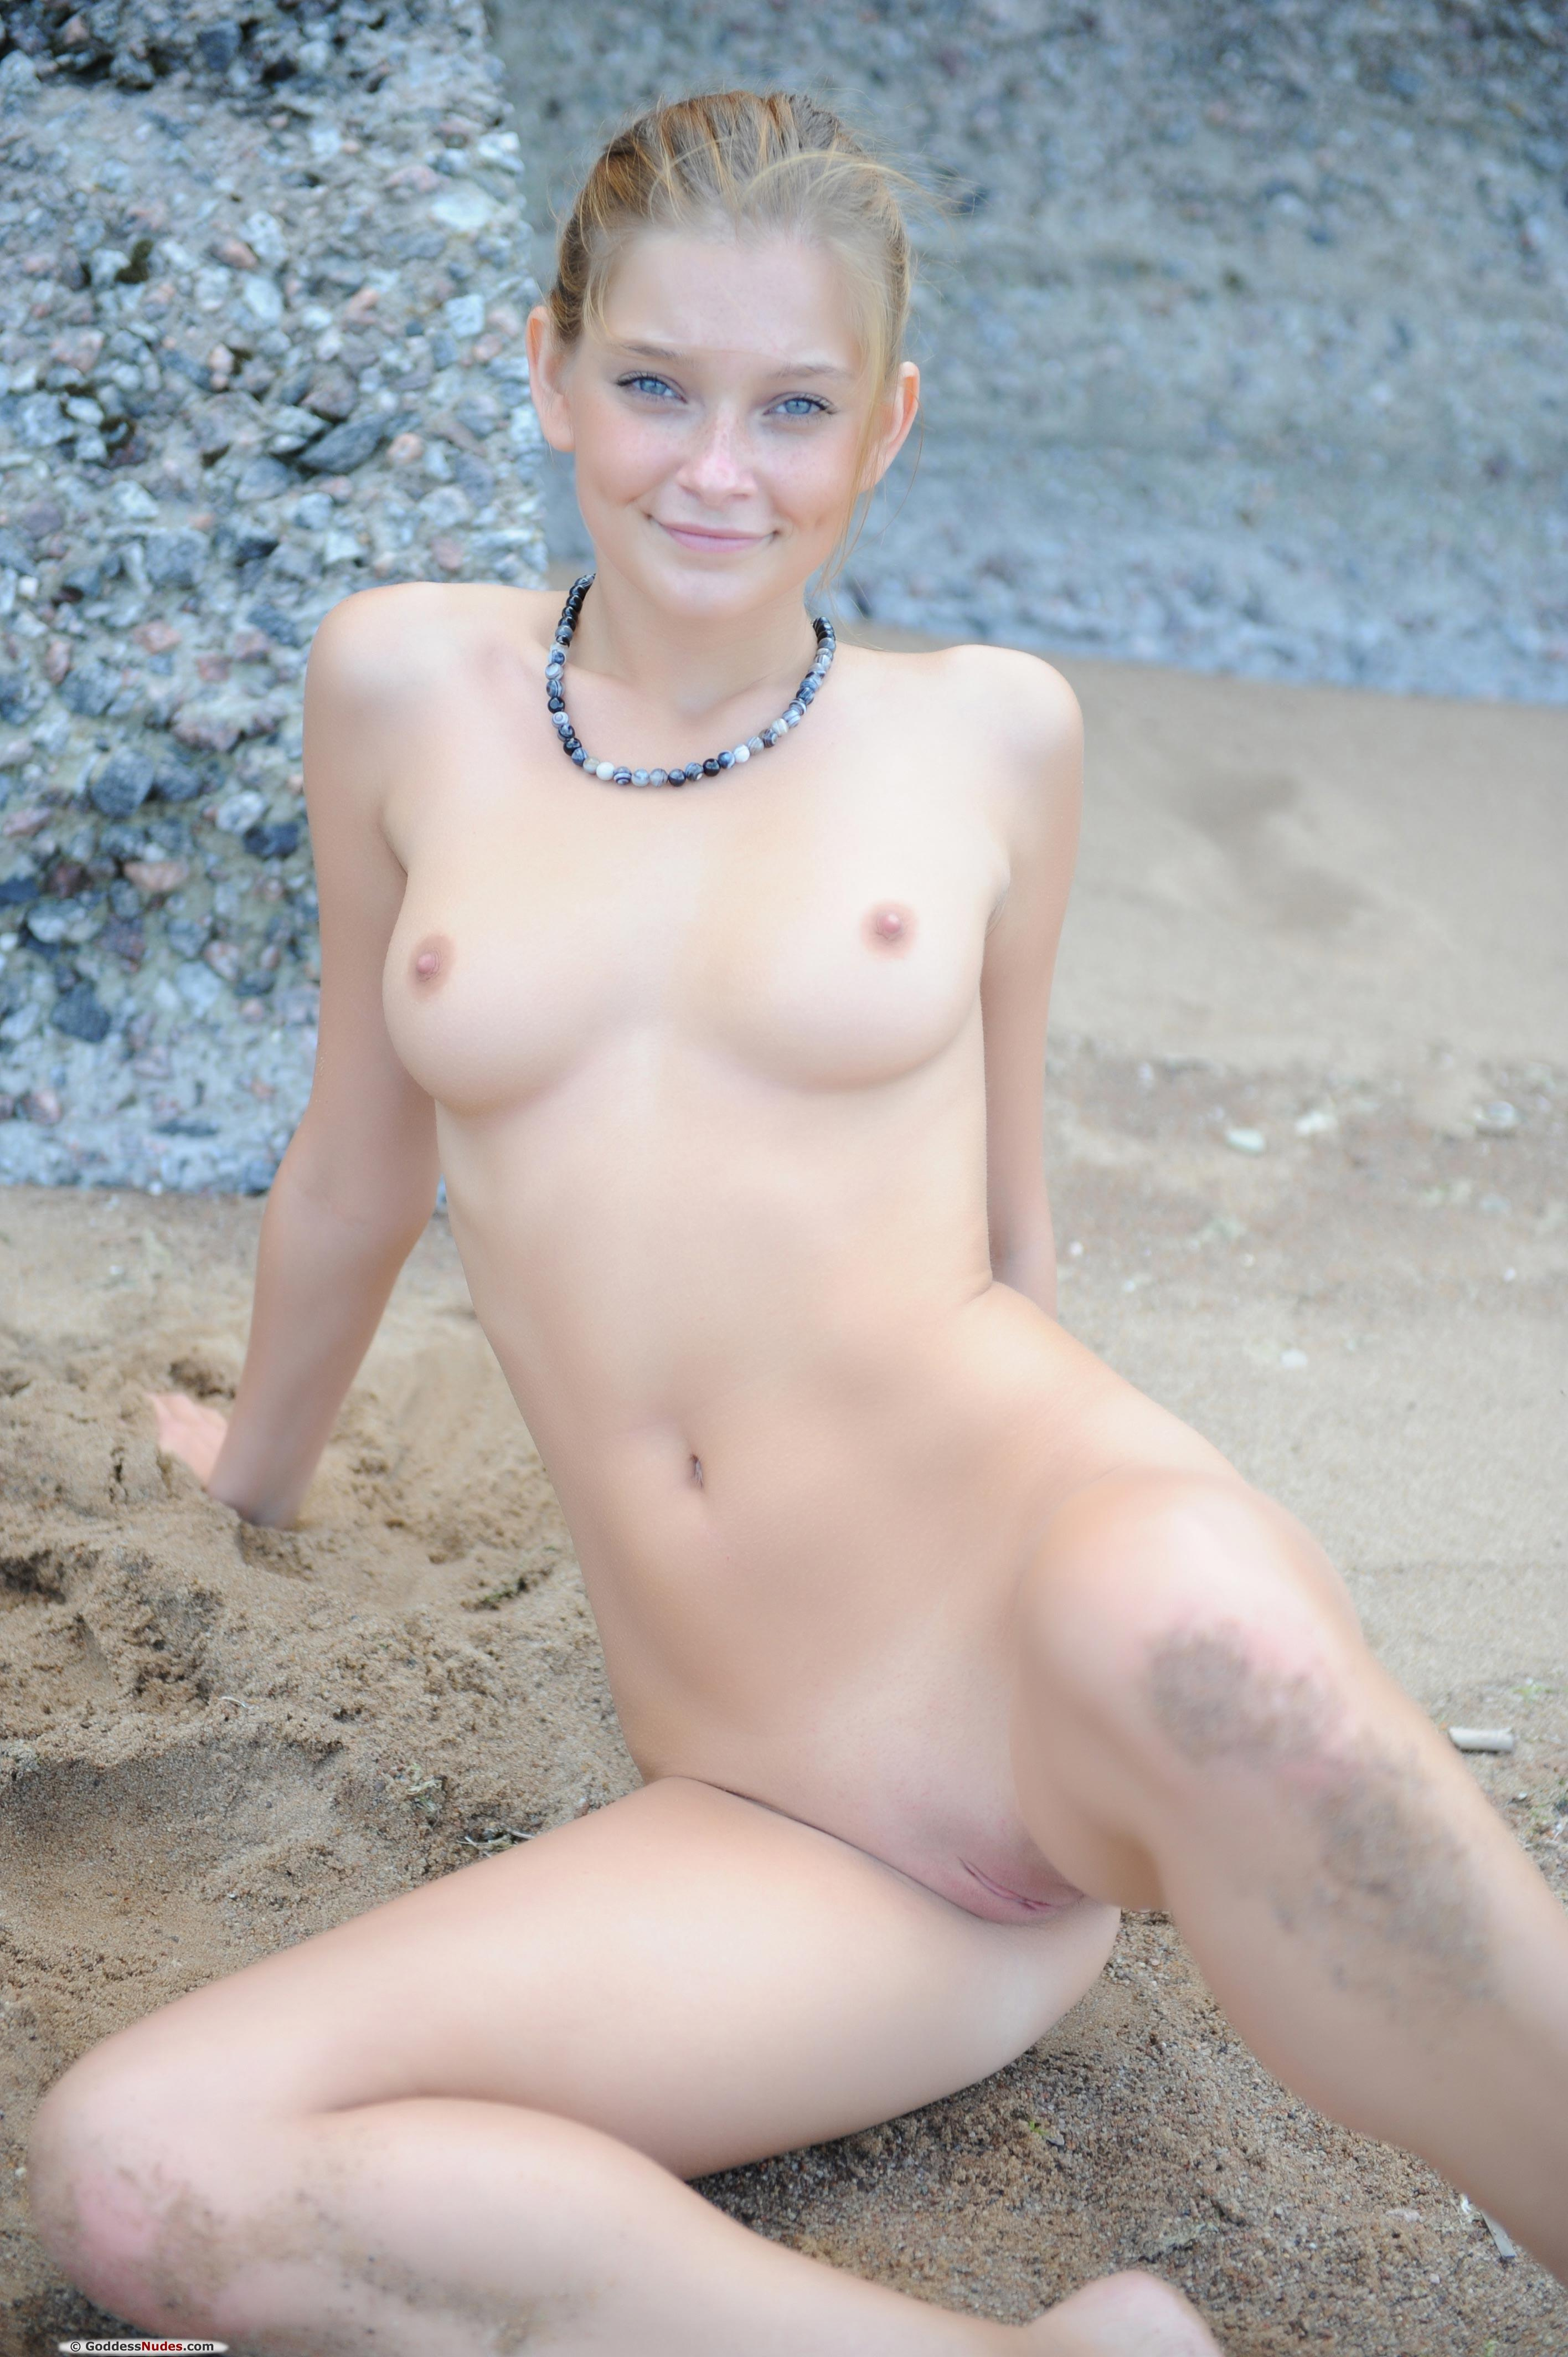 Indiana Belle - pussy and nipples